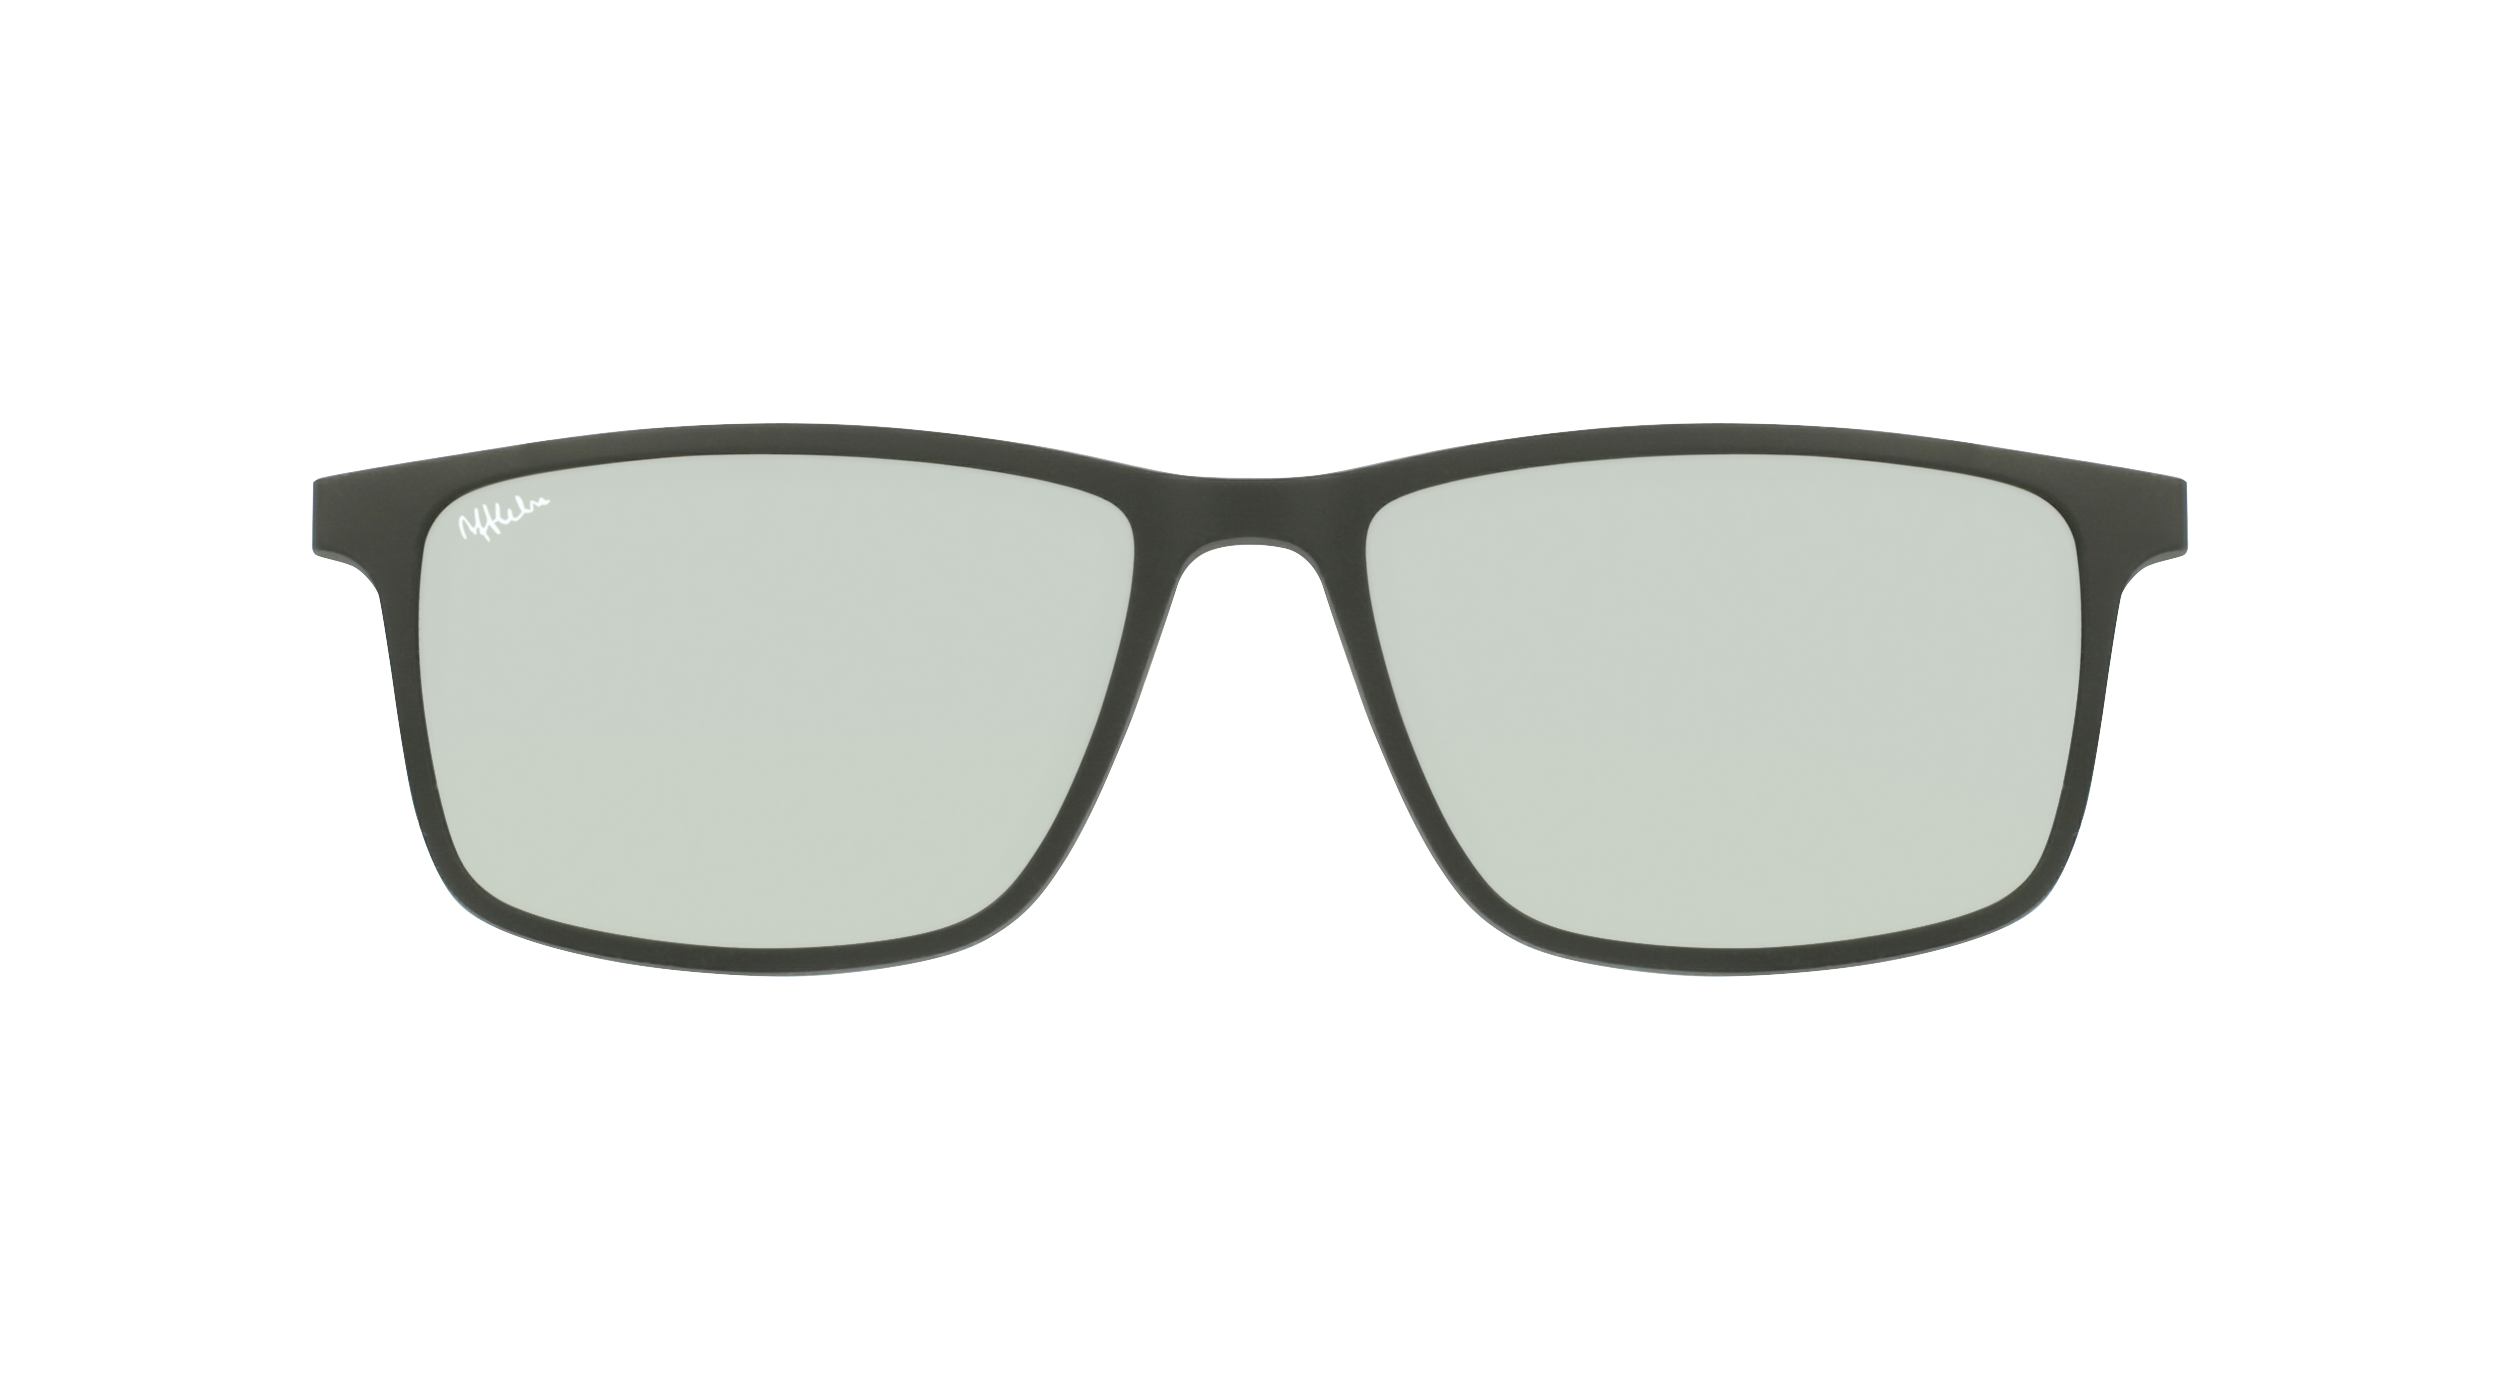 afflelou/france/products/smart_clip/clips_glasses/07630036457122.png